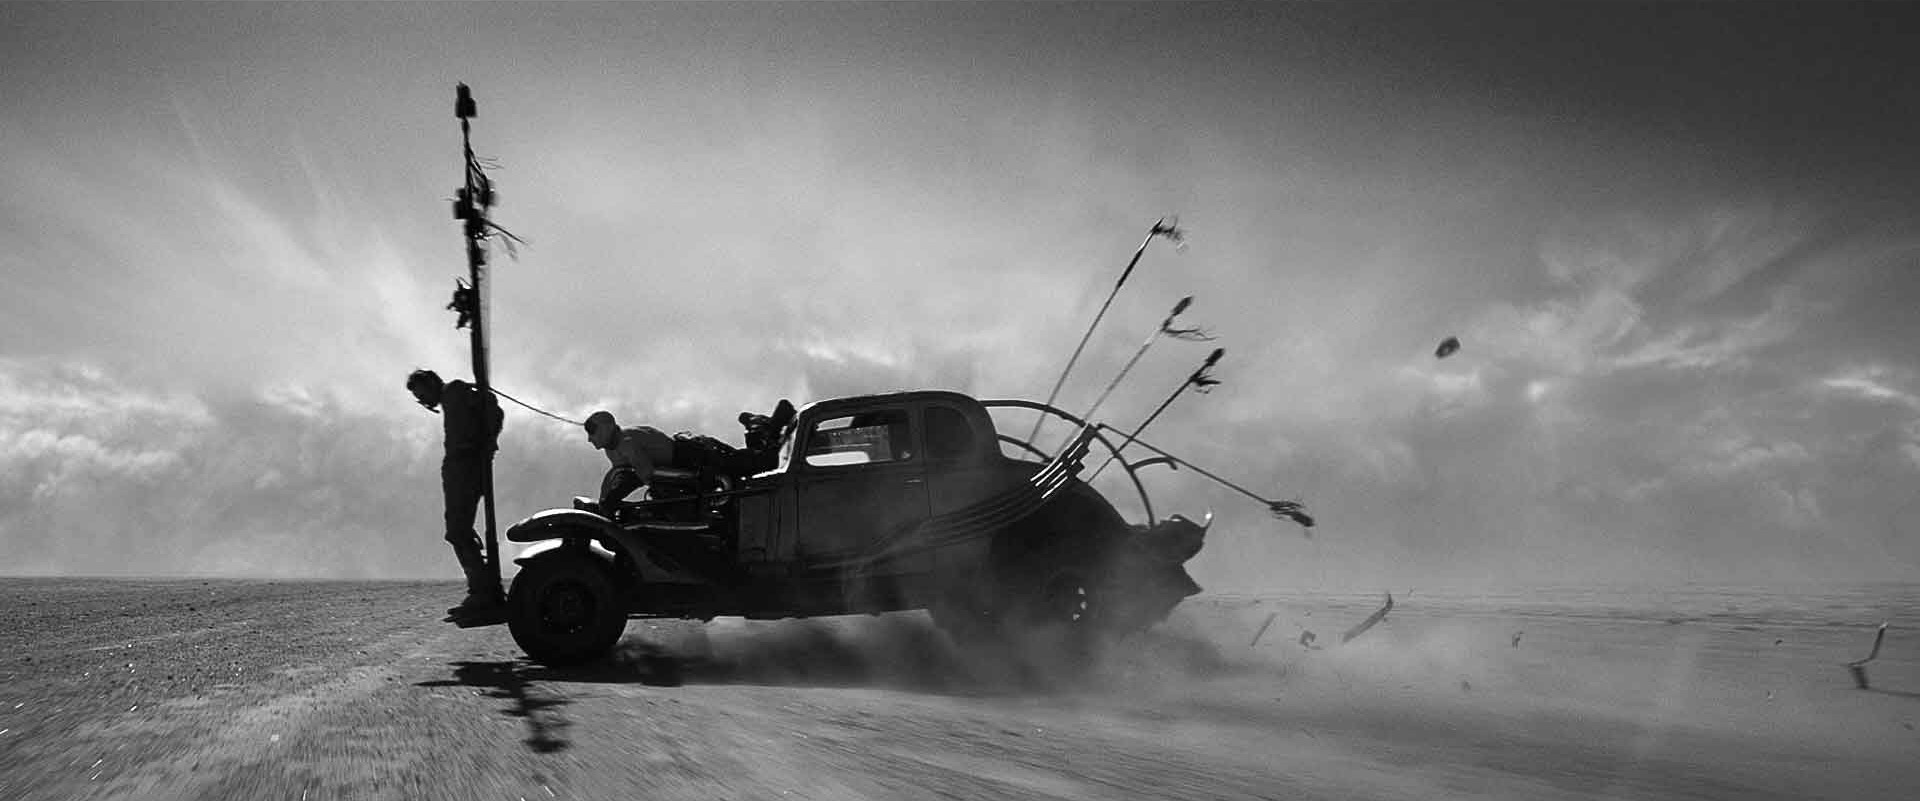 ... And People Who Enjoy Black And White Cinema Is, If Weu0027re Being Cynical,  Likely Very Slim. So Why Fury Road, The Most Actiony Of All The Action  Films To ... Photo